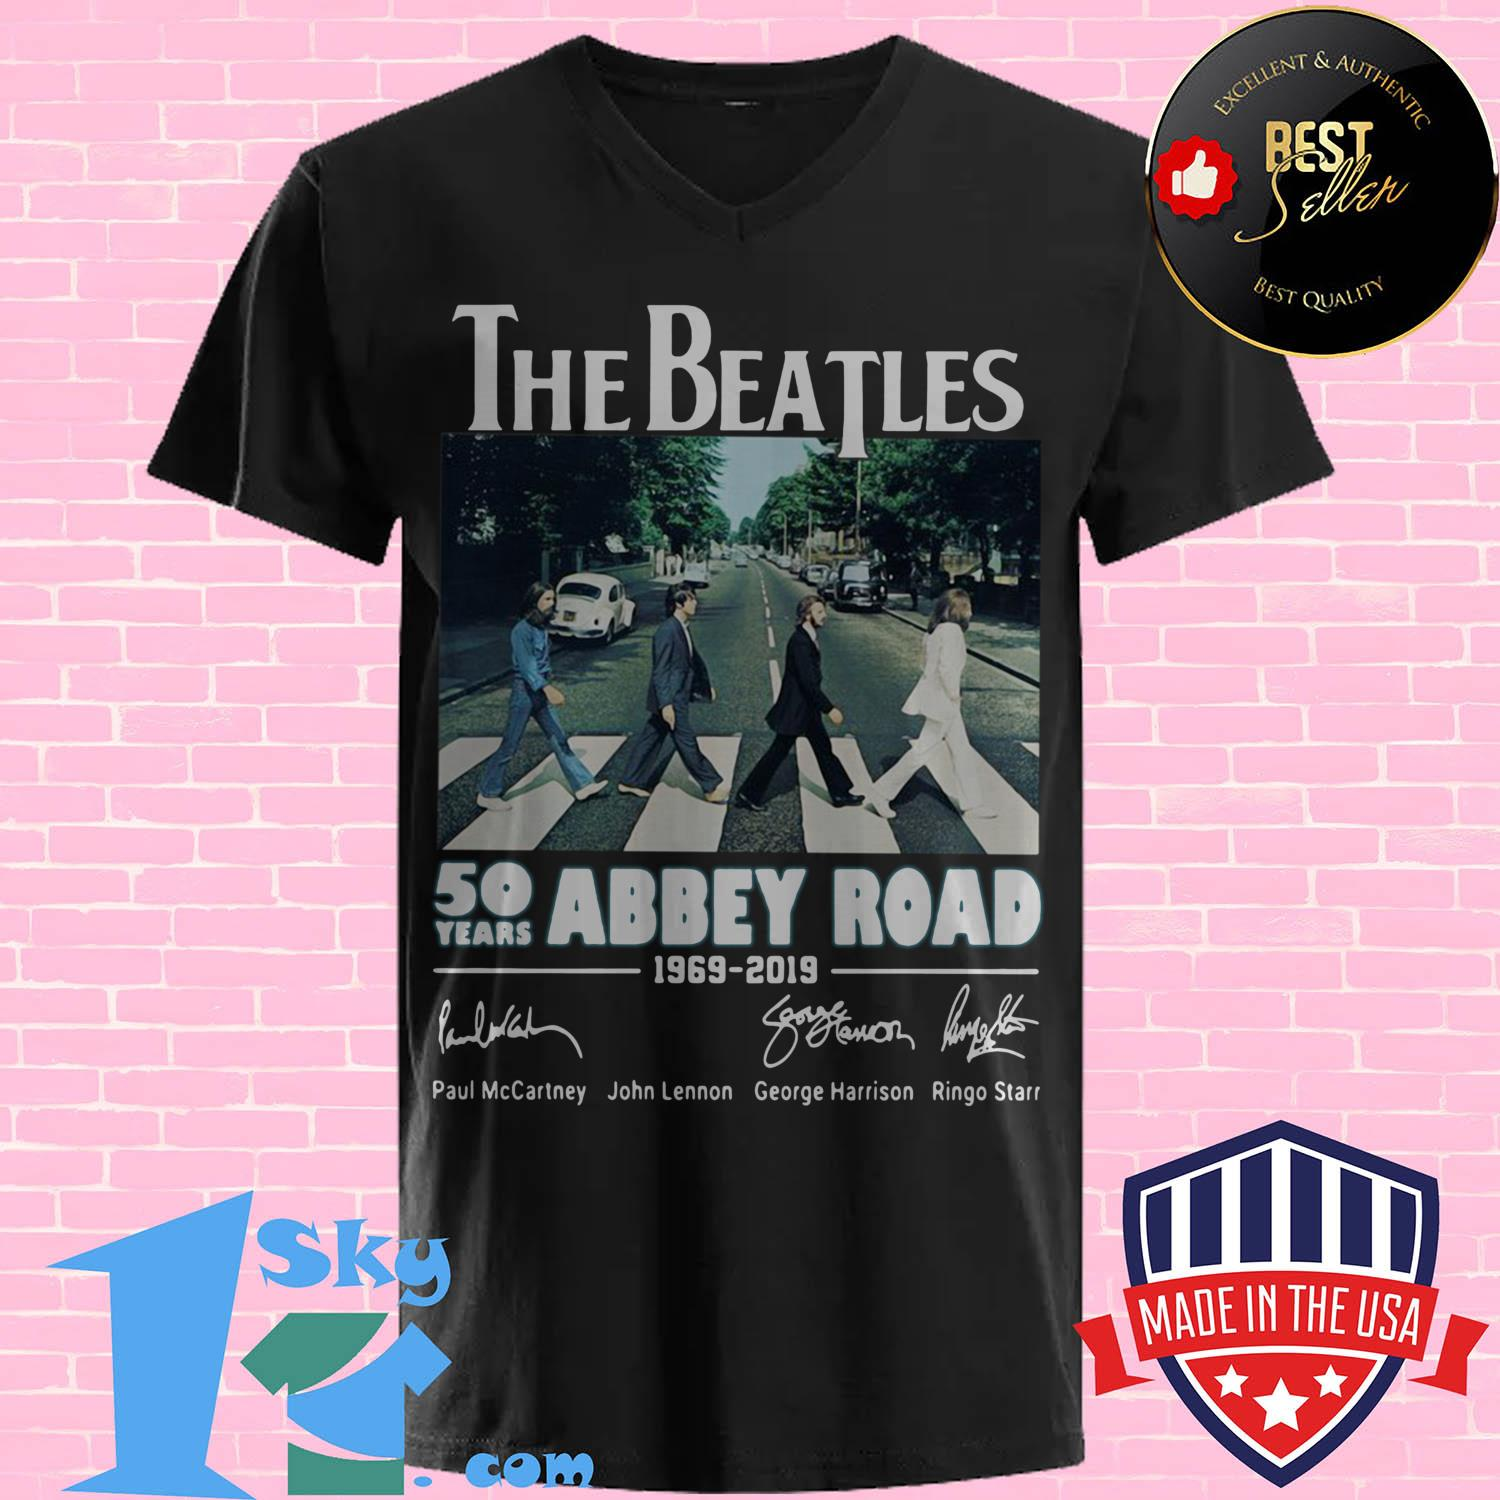 the beatles 50 years abbey road 1969 2019 signature v neck - The Beatles 50 years Abbey Road 1969–2019 signature shirt